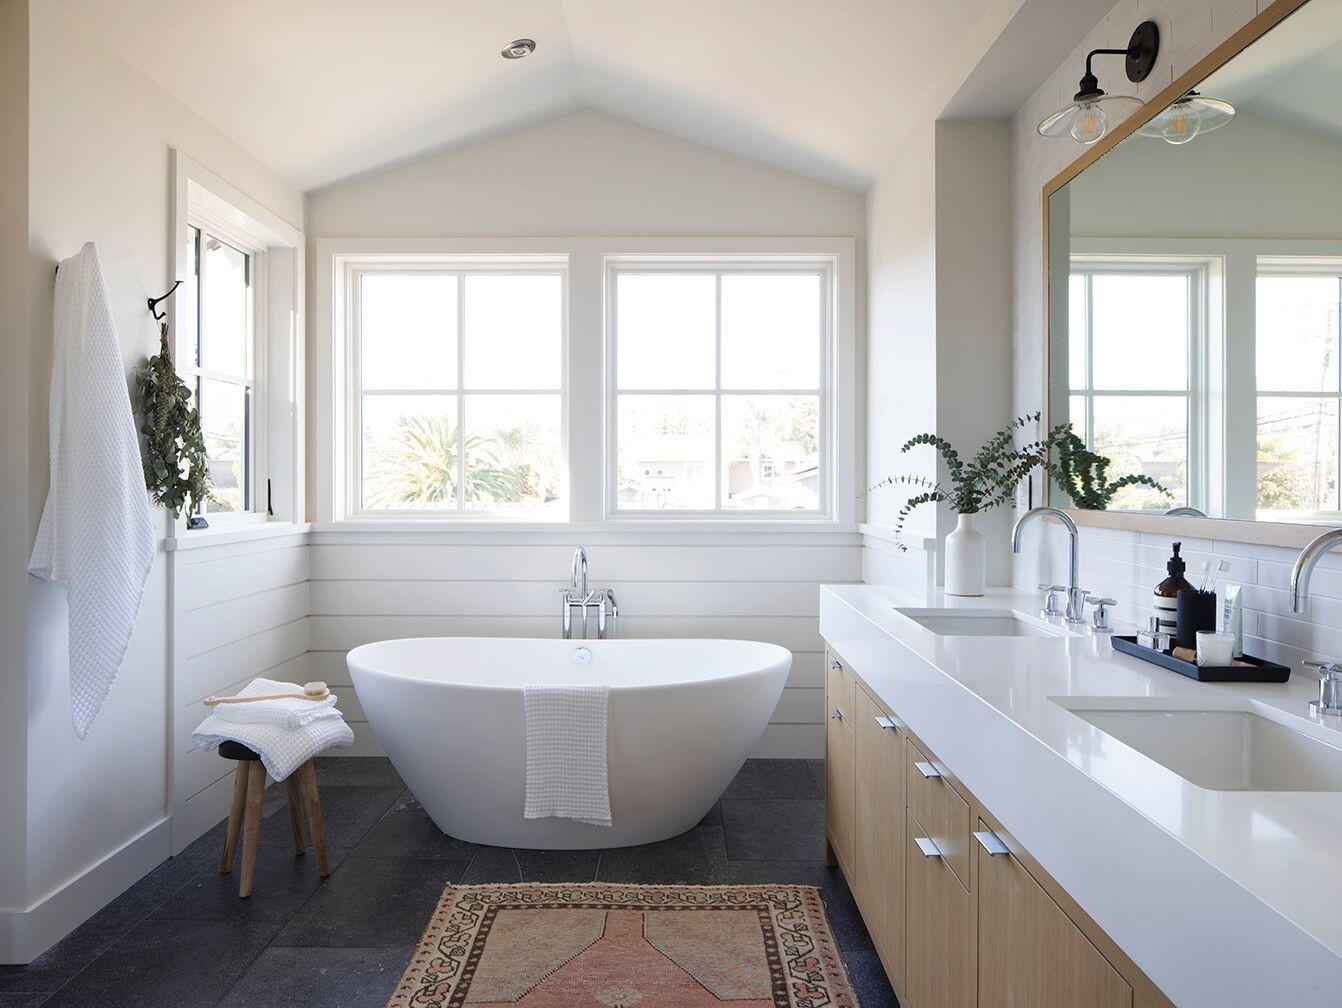 The master bath features a stand-alone tub and is flooded with natural light.